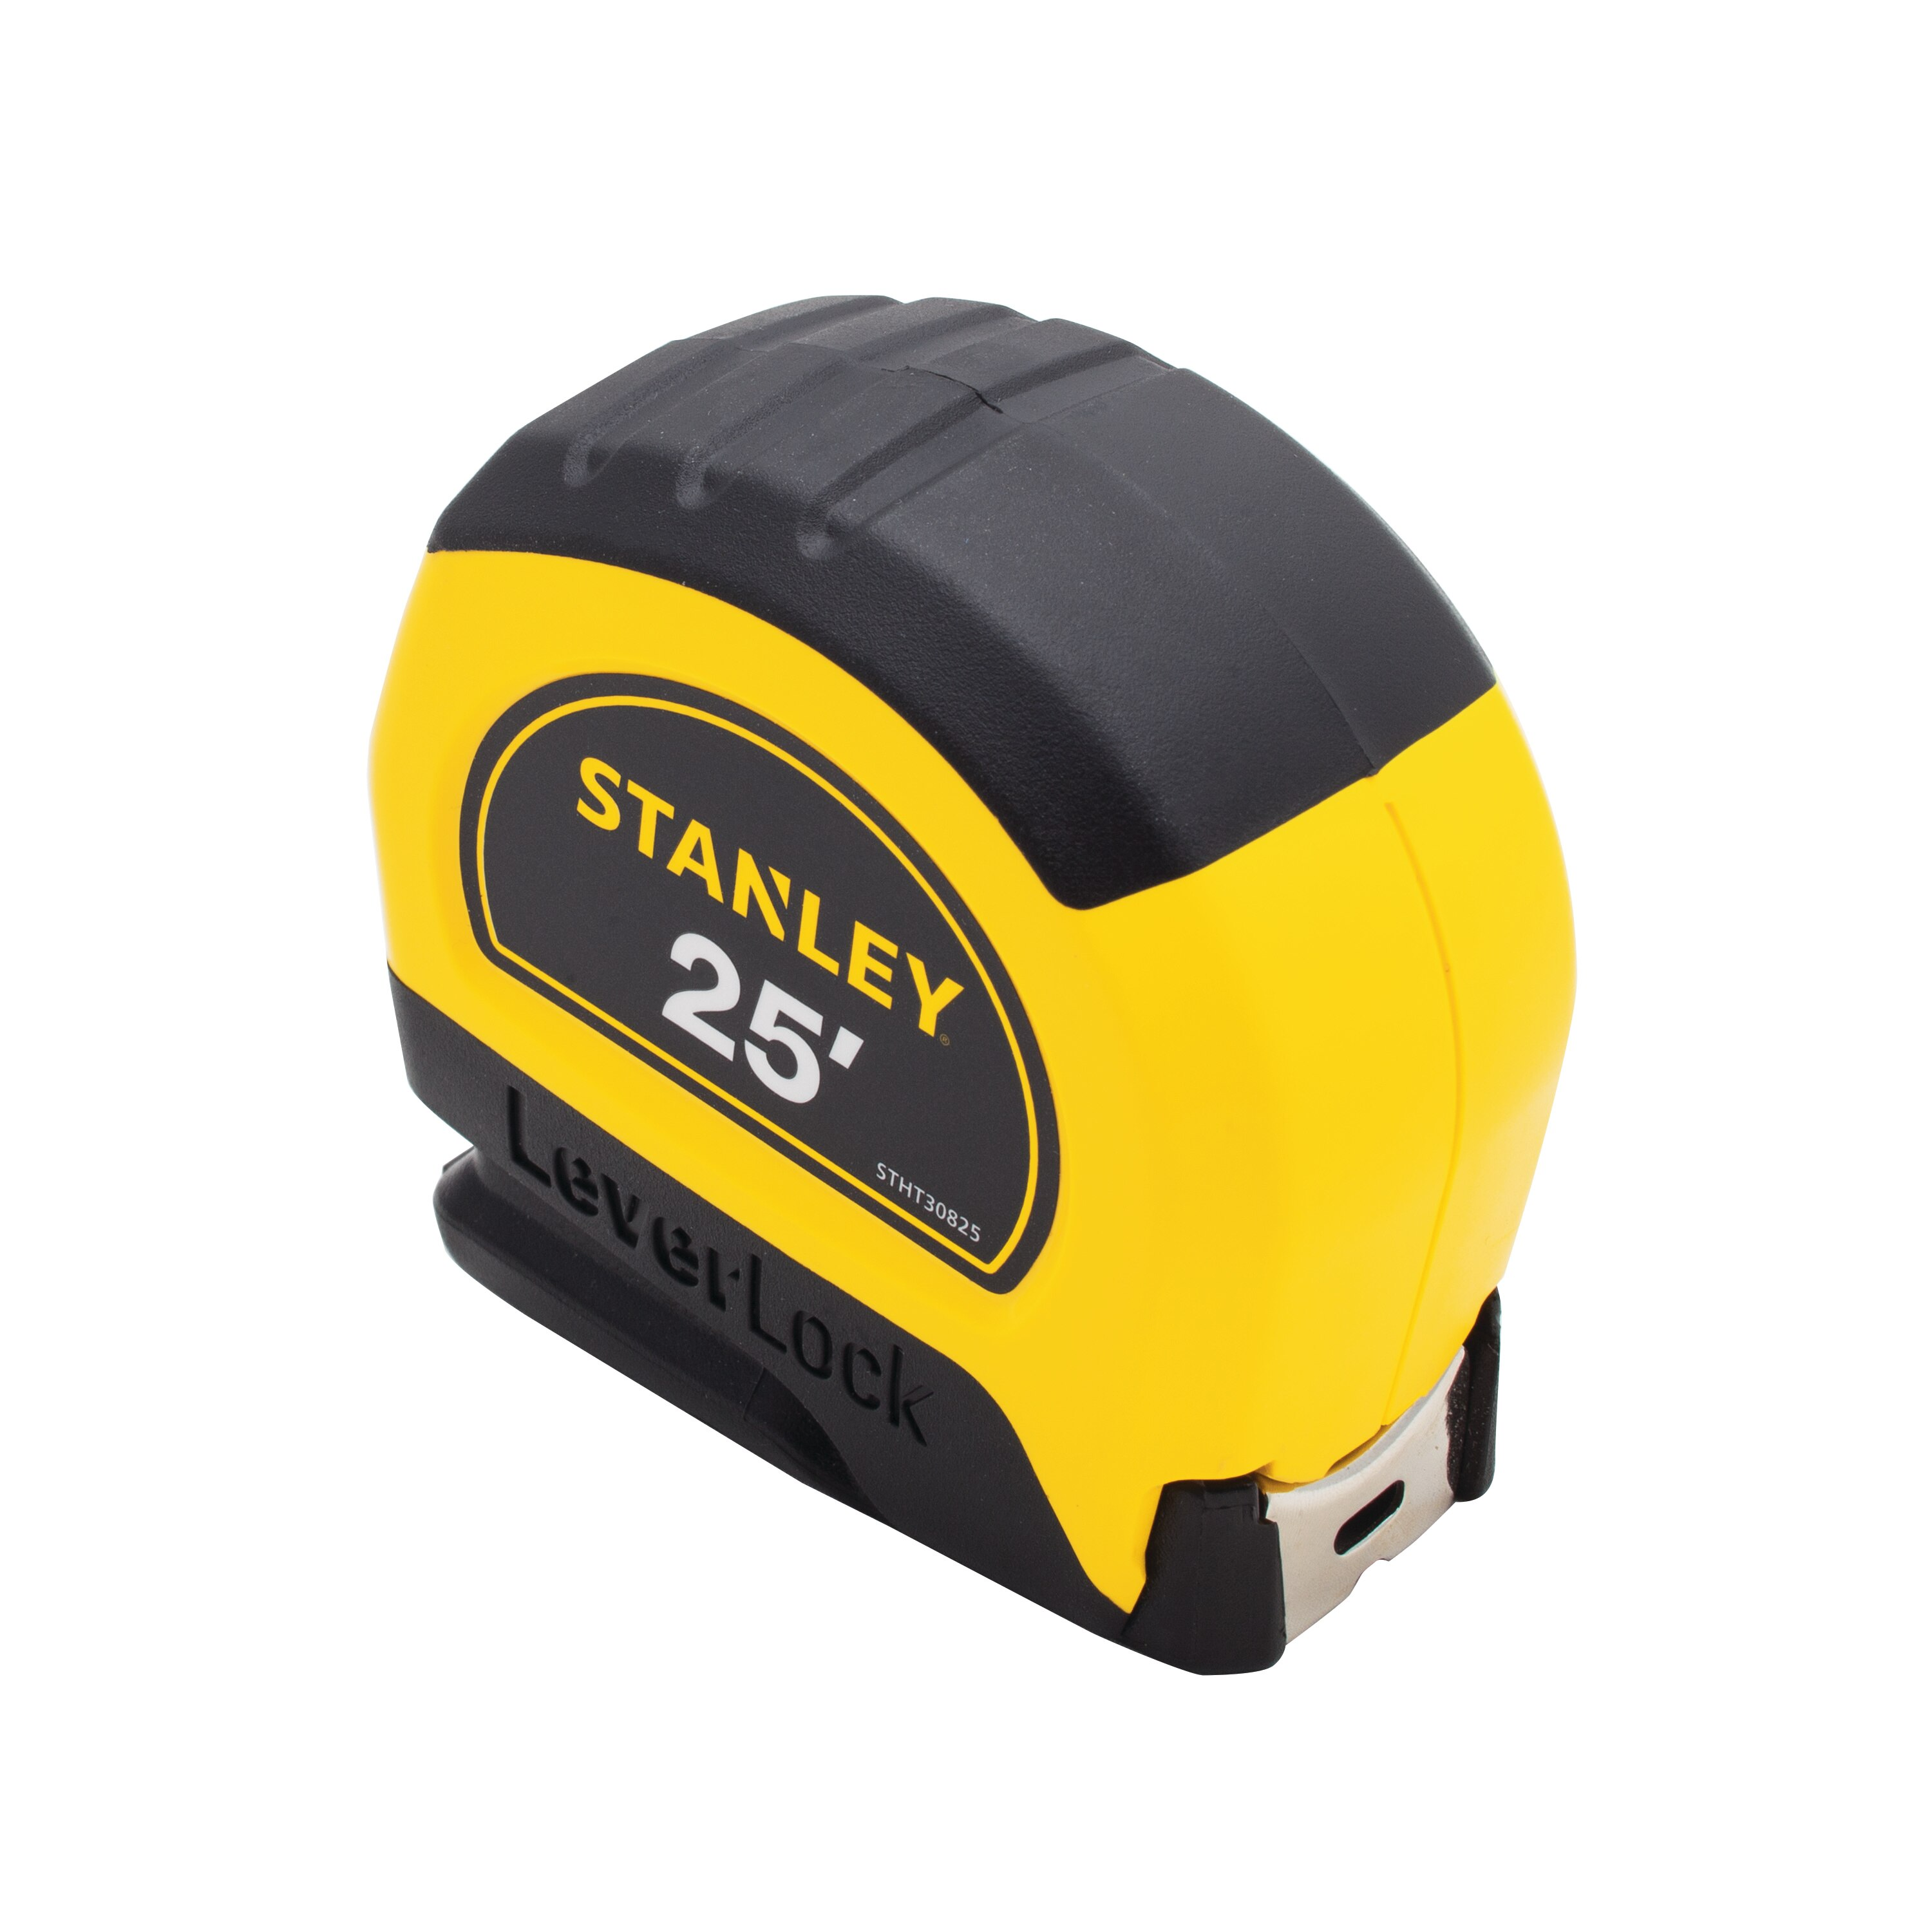 Stanley Tools - 25 ft LEVERLOCK Tape Measure - STHT30825